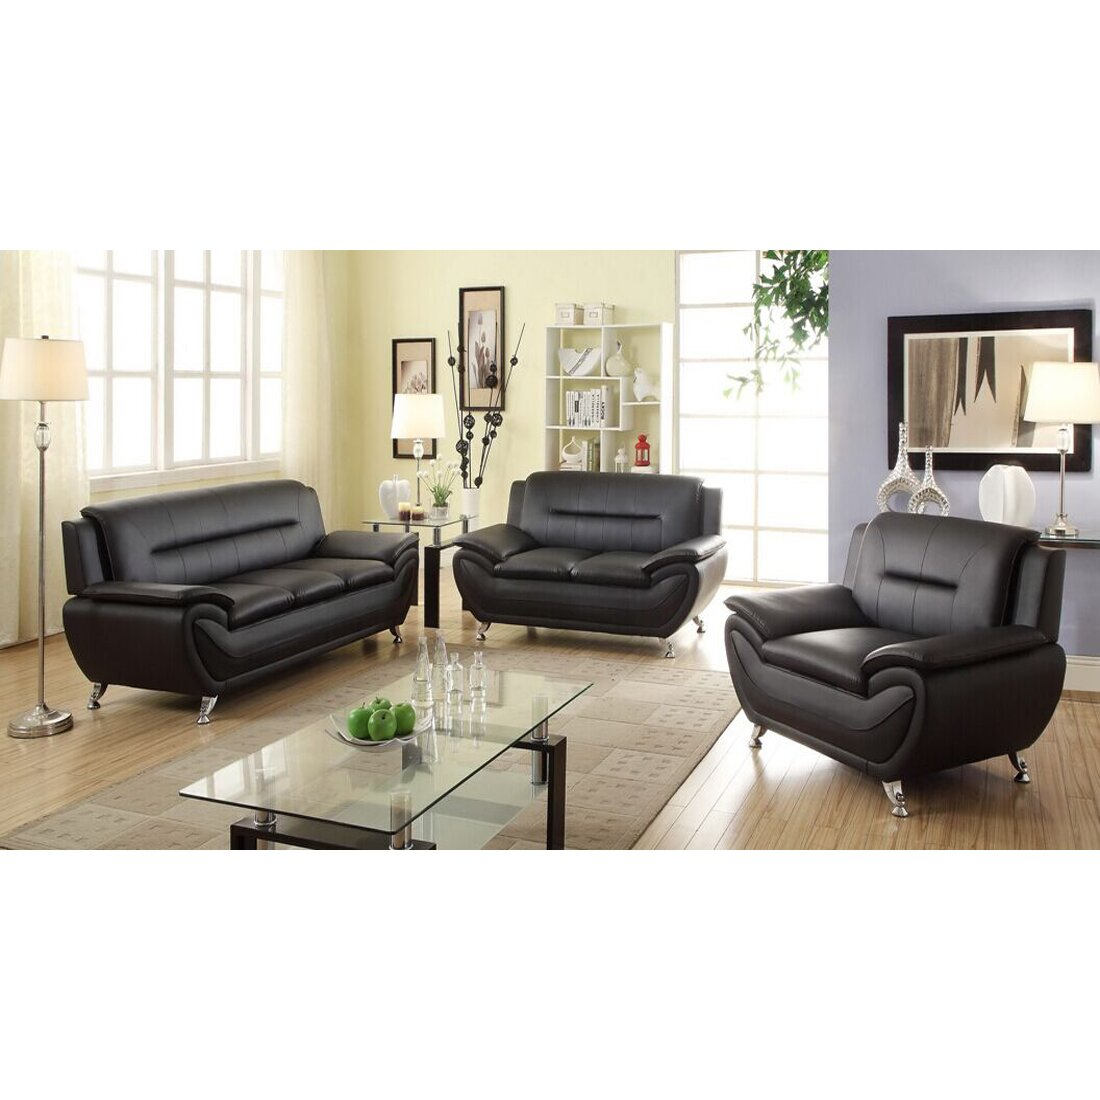 living in style sophie 3 piece living room set reviews